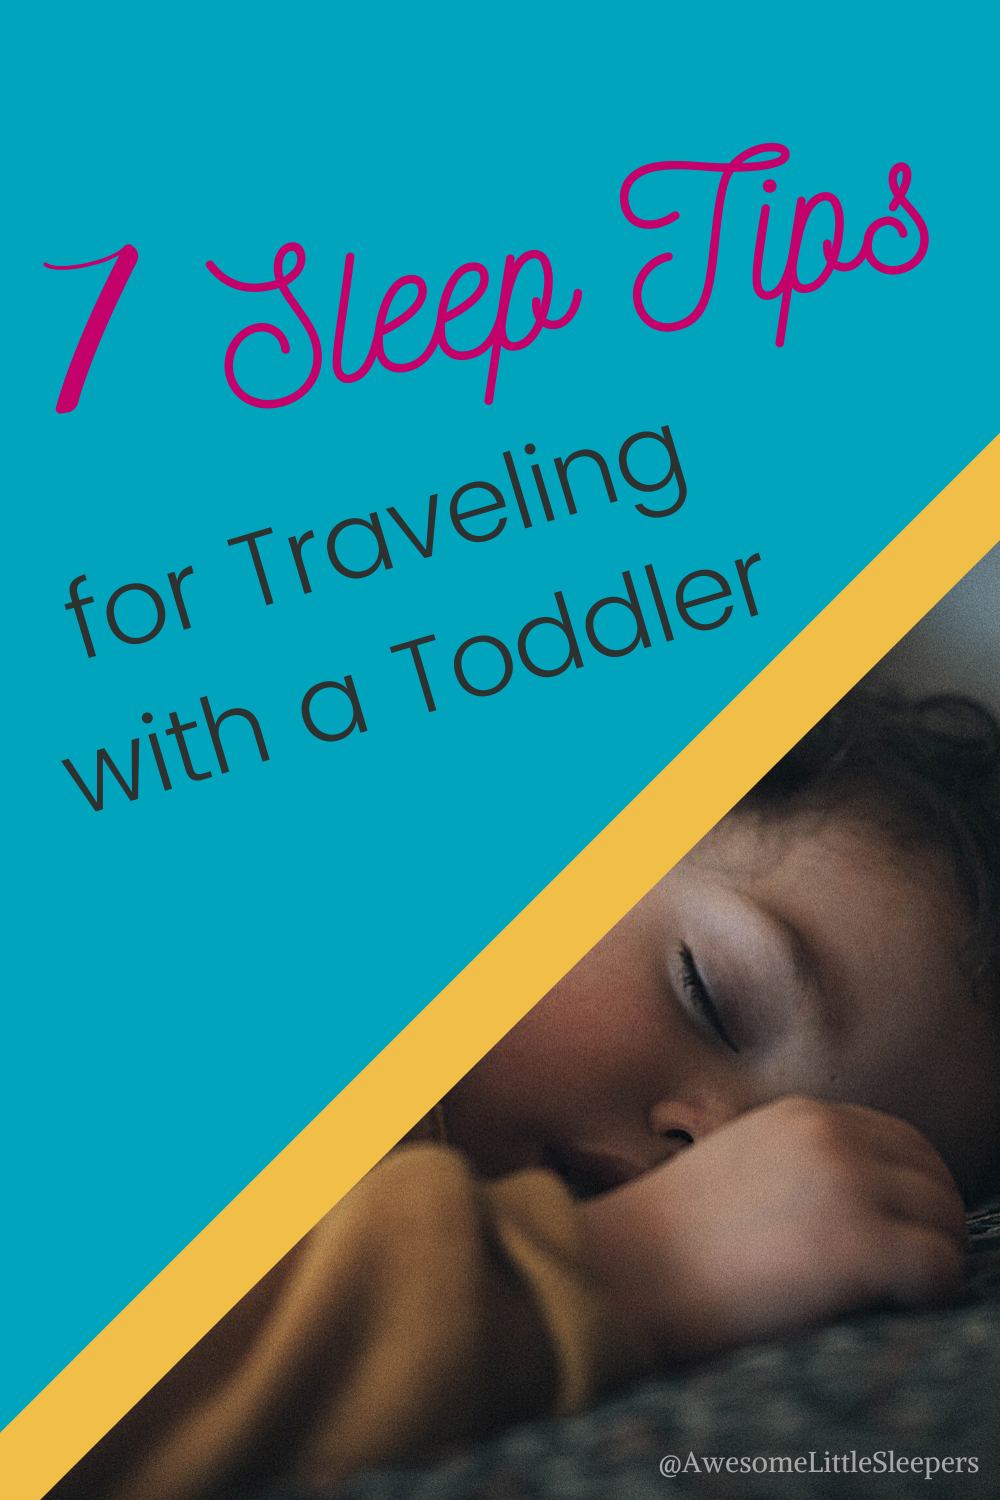 7 Sleep Tips for Traveling with a Toddler